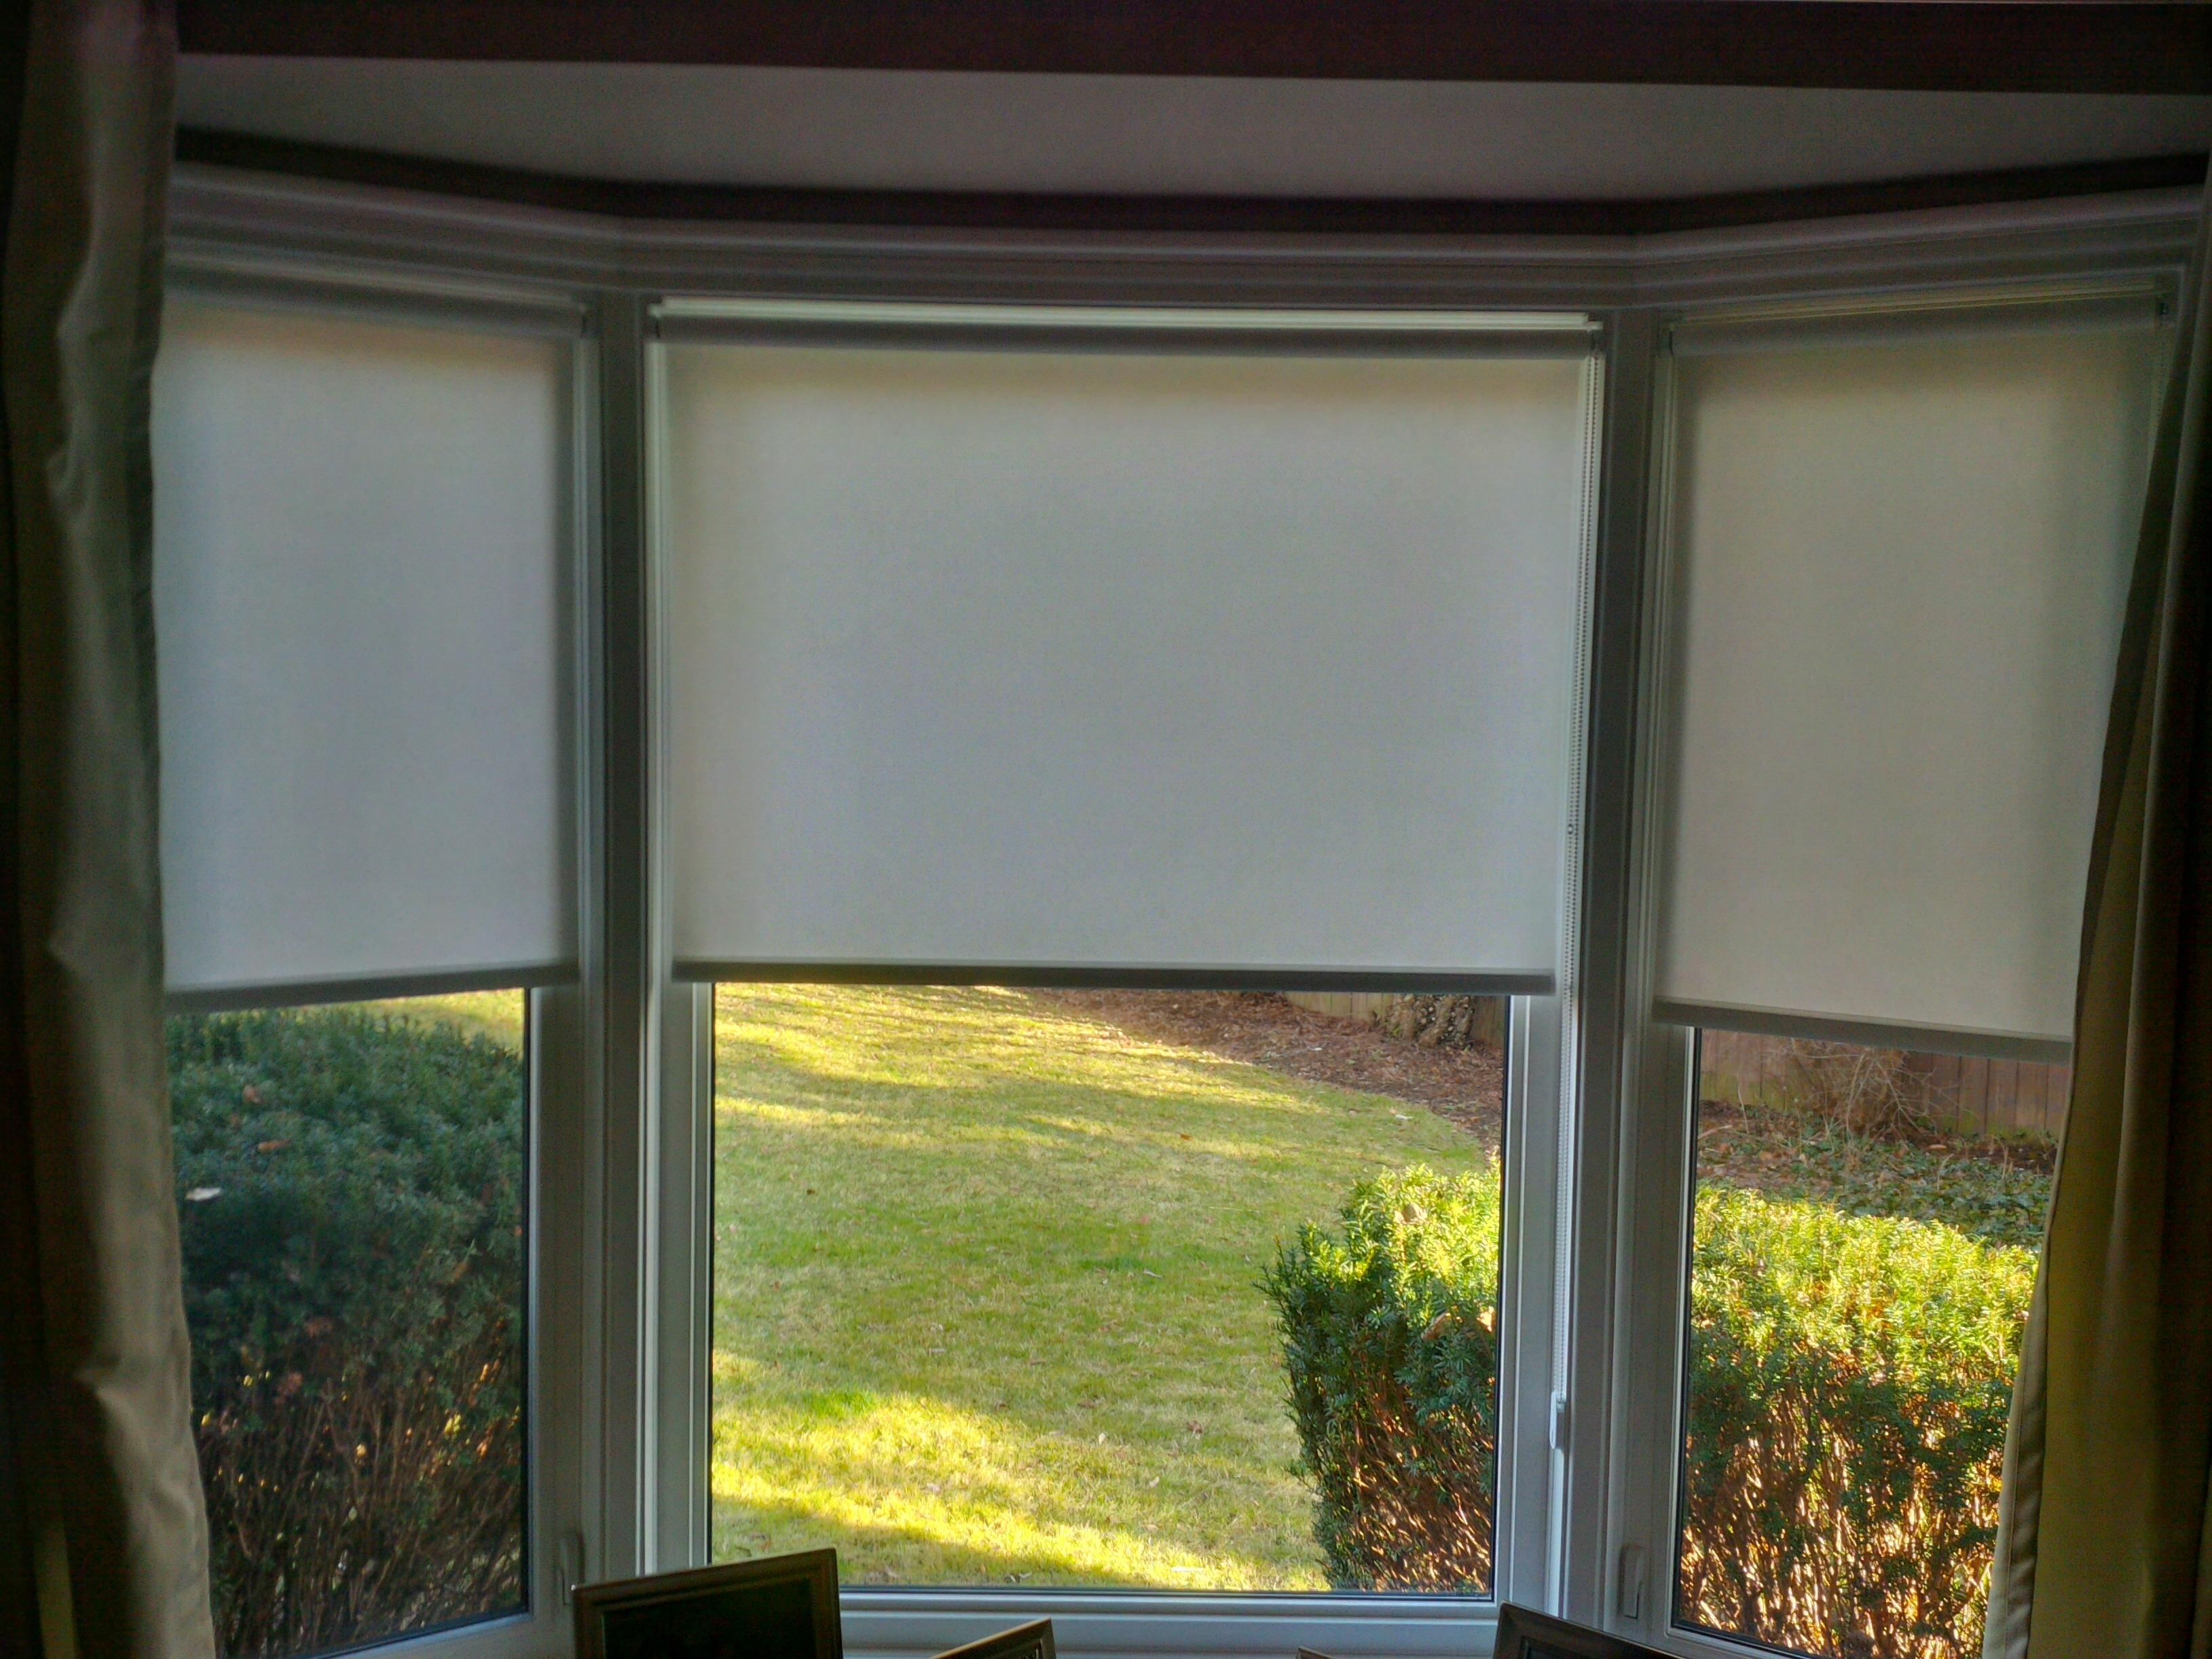 """Budget Blinds à Waterloo: Finding a product that can fully mount inside a window opening with only a depth of about 1.25"""" can be a challenge...until you call Budget Blinds! We have more unique and exclusive window coverings options than anyone else. This image shows a BECE privacy roller shade with no valance."""